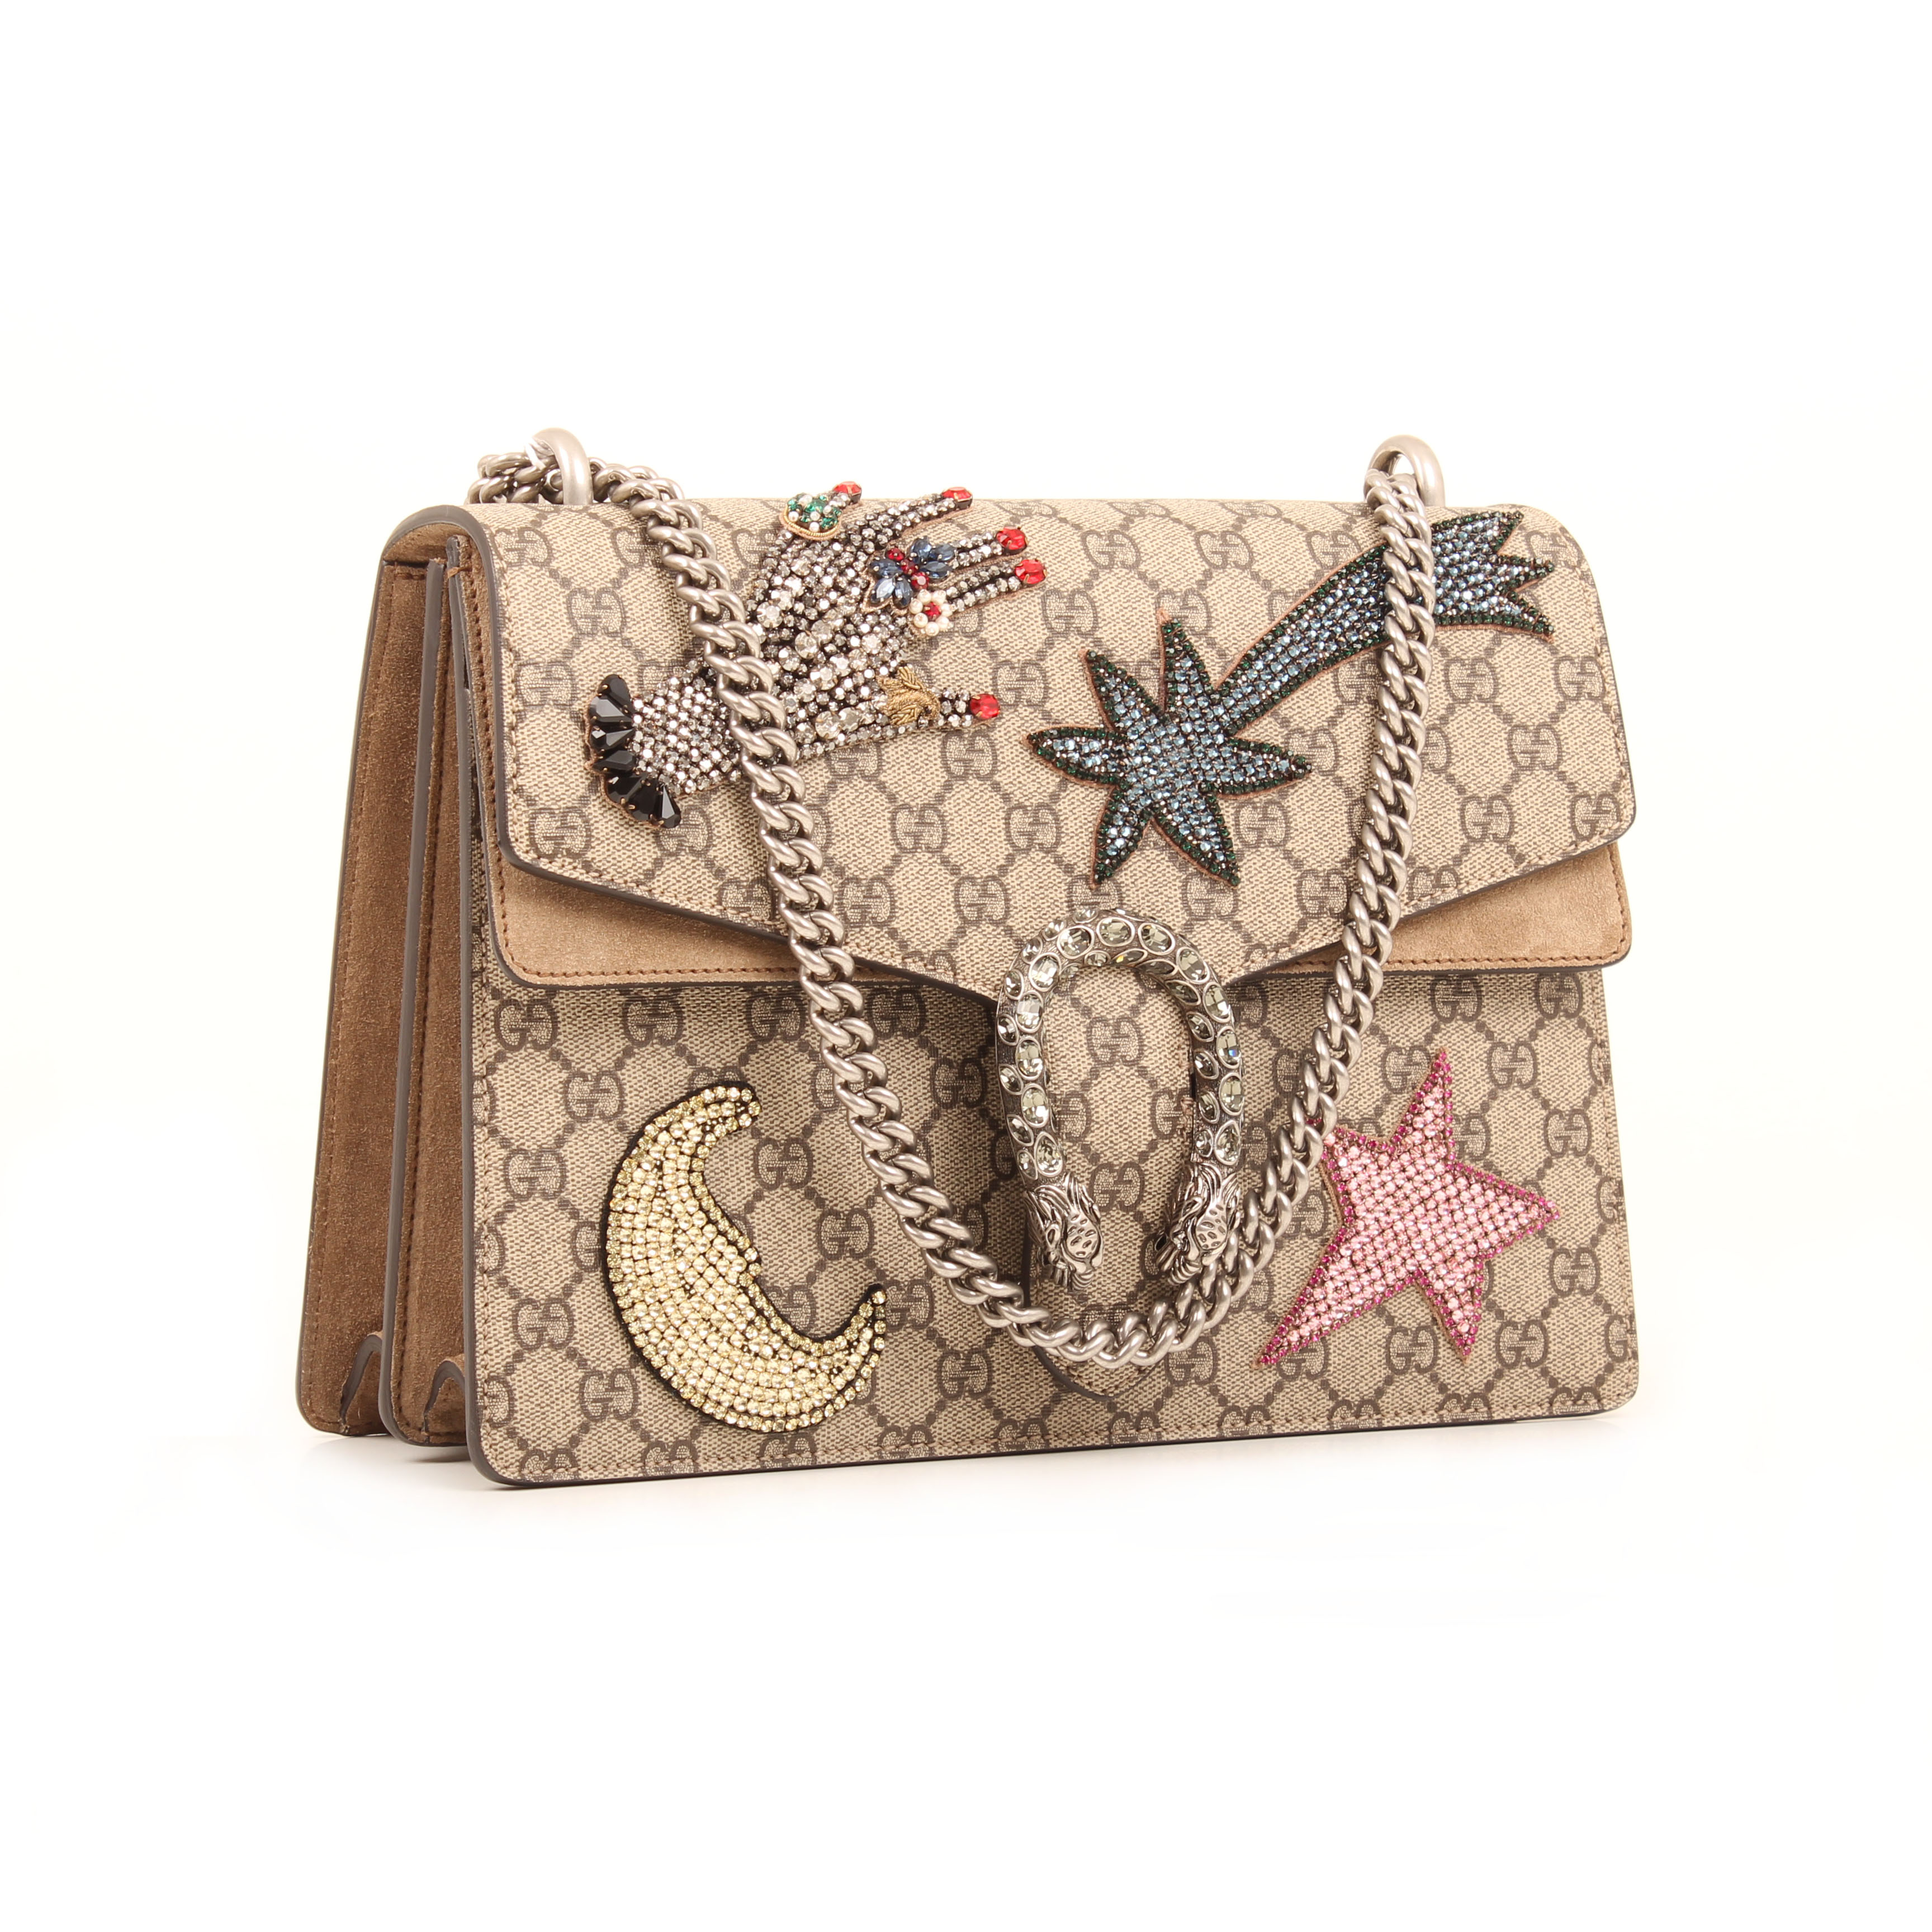 gucci shoulder bag dionysus embroidered rhinestones suede taupe gg supreme canvas general